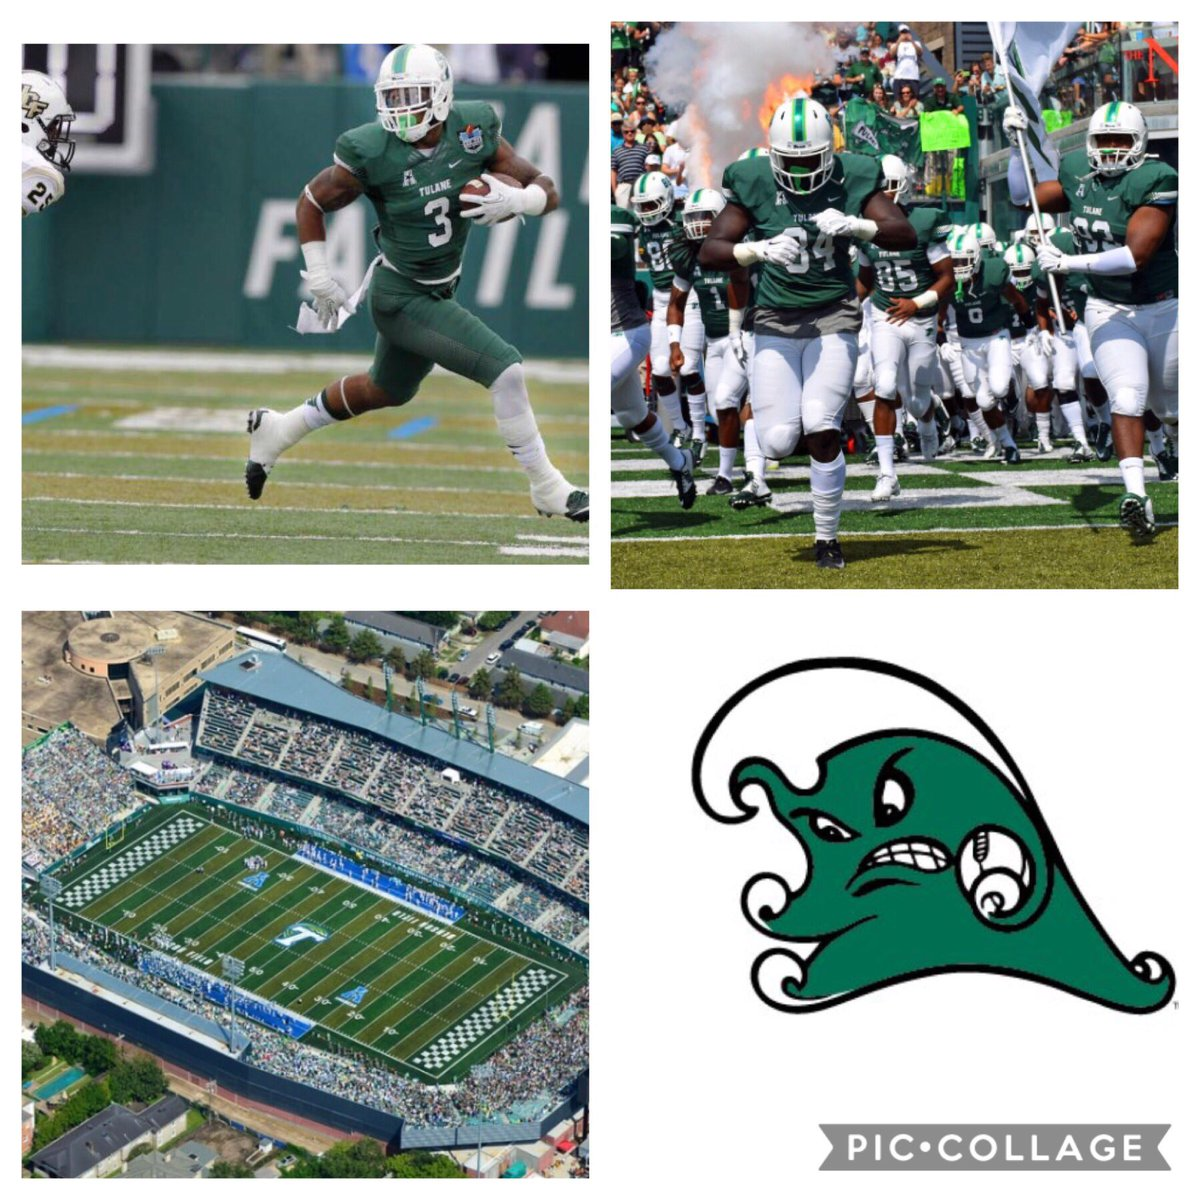 Blessed to receive my first offer from the University Of Tulane! I want to thank all family,friends, and coaches for the support. I also want to thank @JJMcCleskey and other coach for believing in me on this Journey.